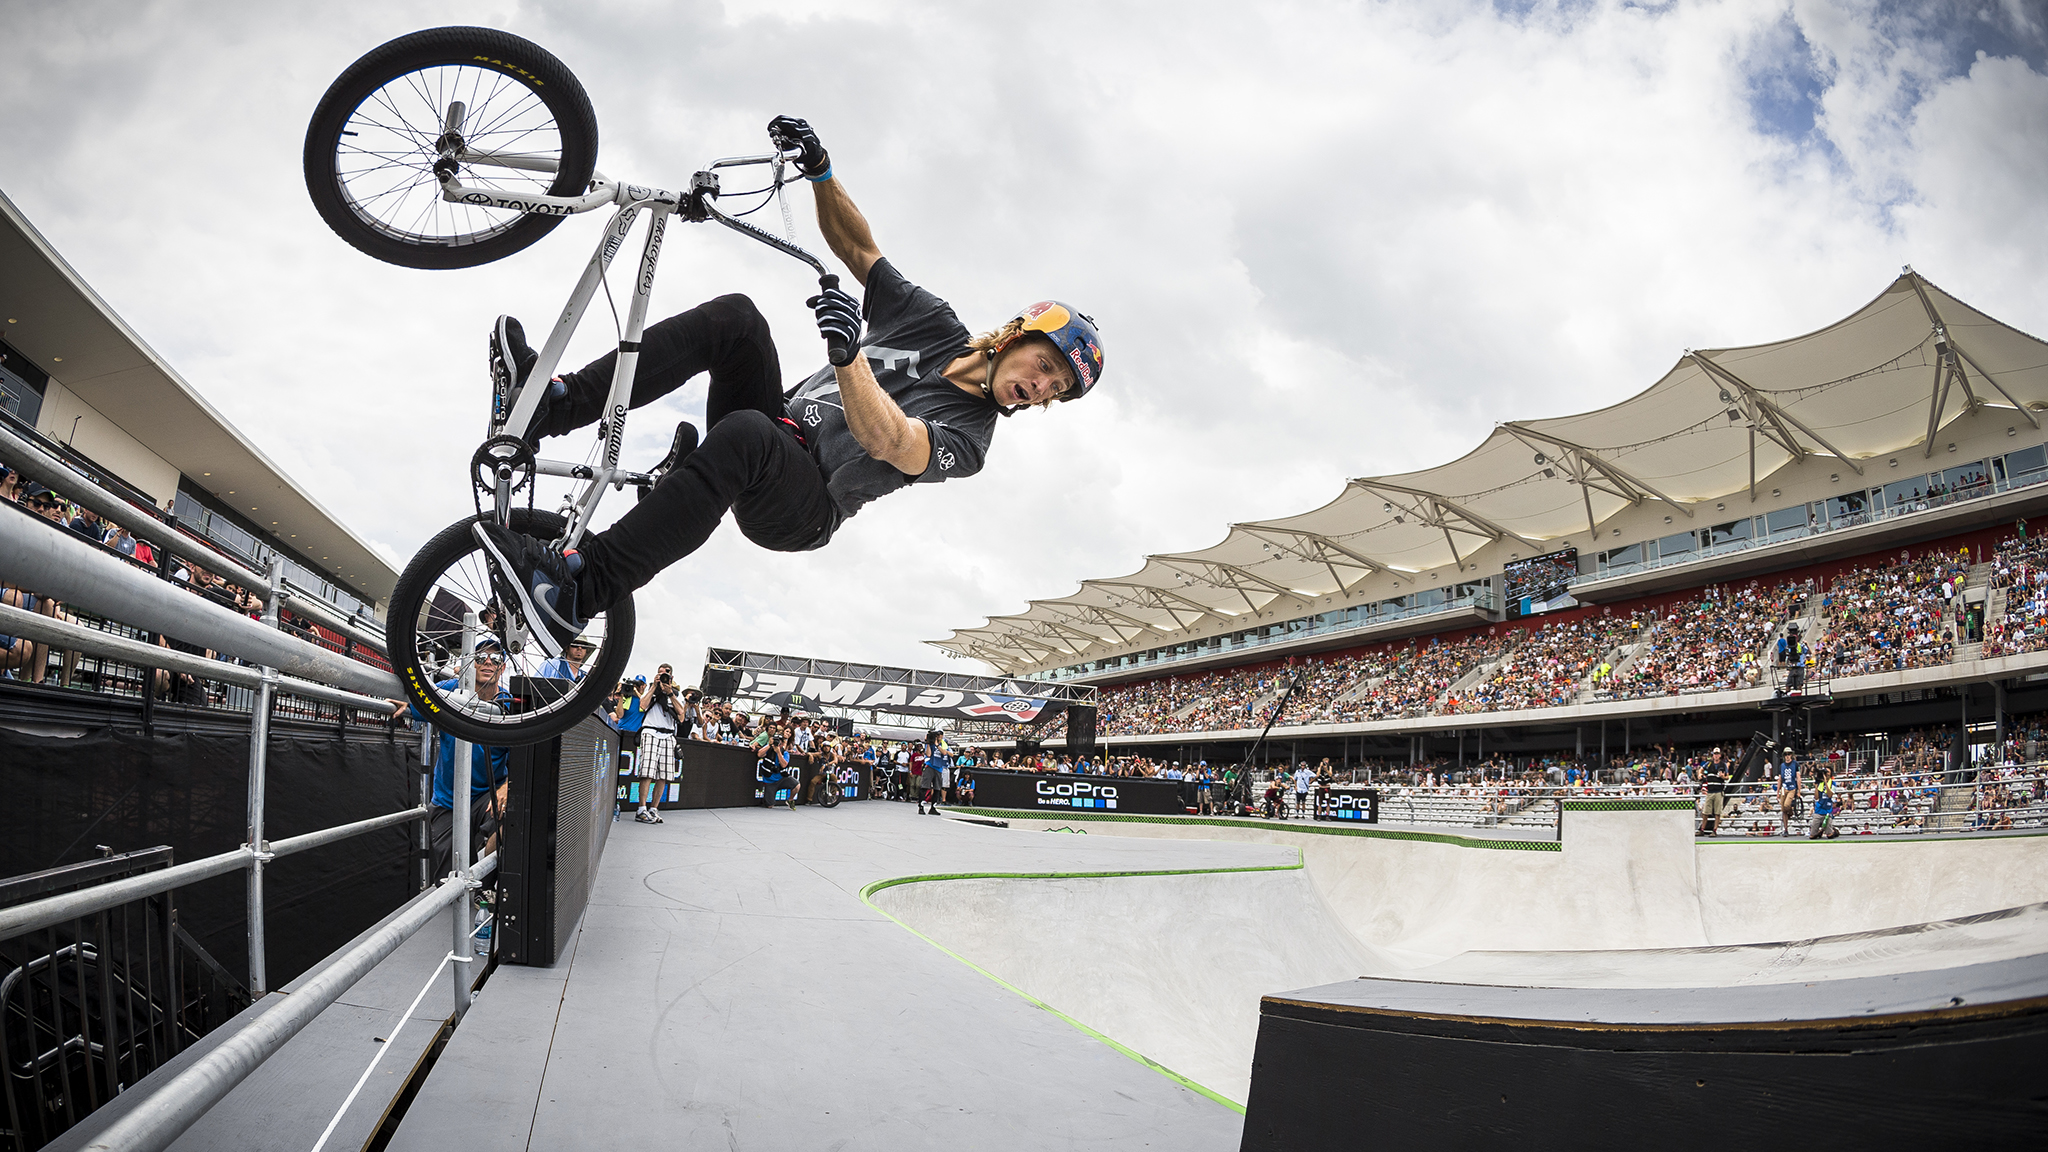 X Games BMX gold medalists in review